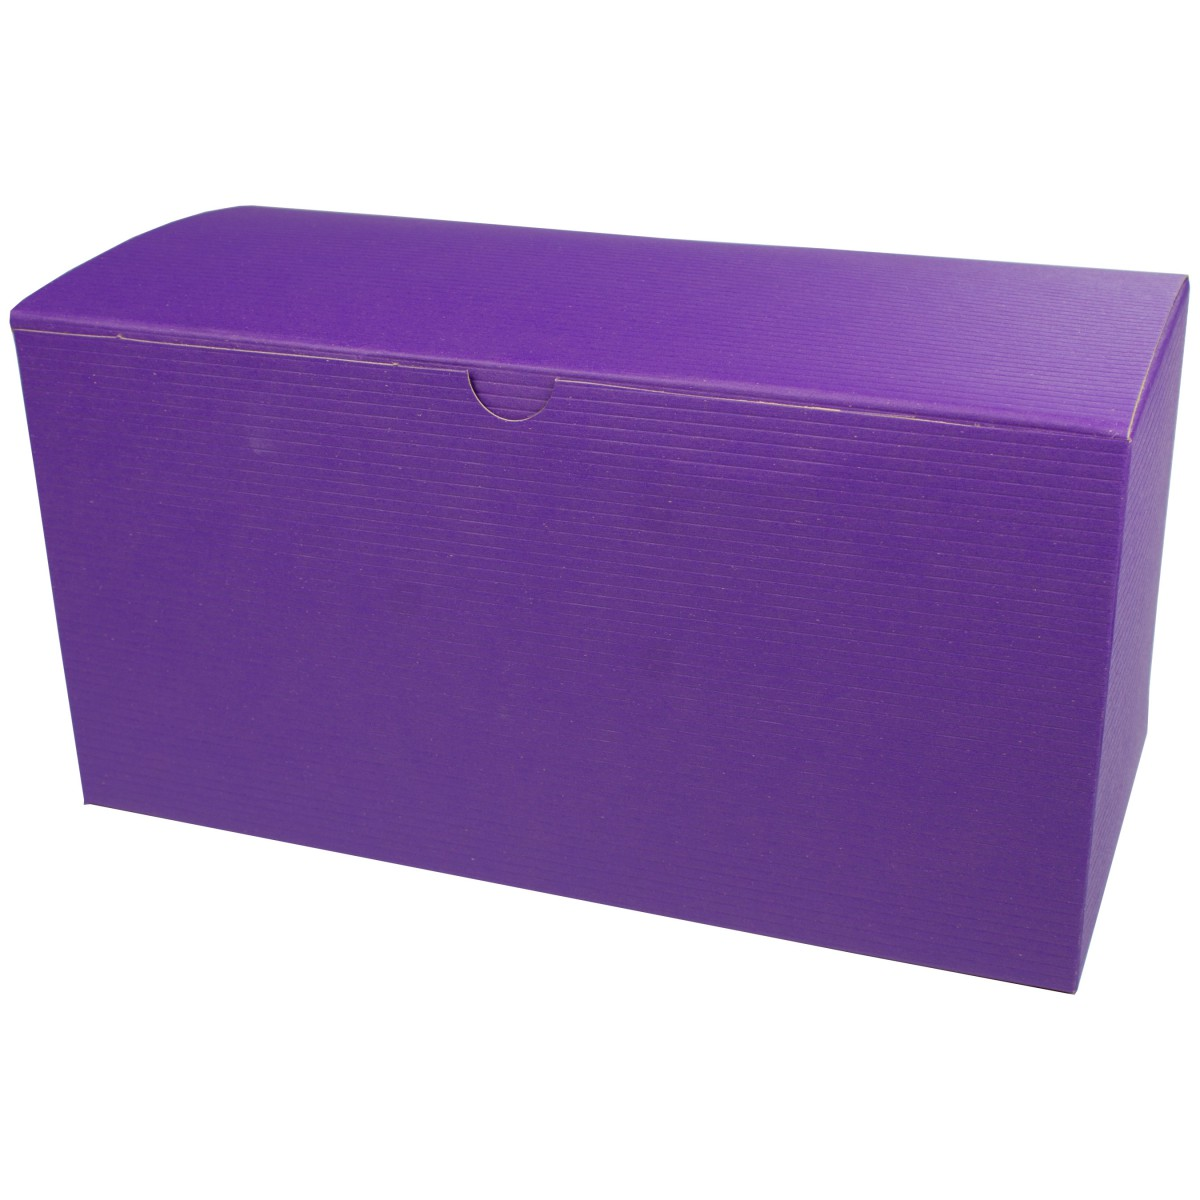 12 x 6 x 6 PURPLE TINTED TUCK-TOP GIFT BOXES